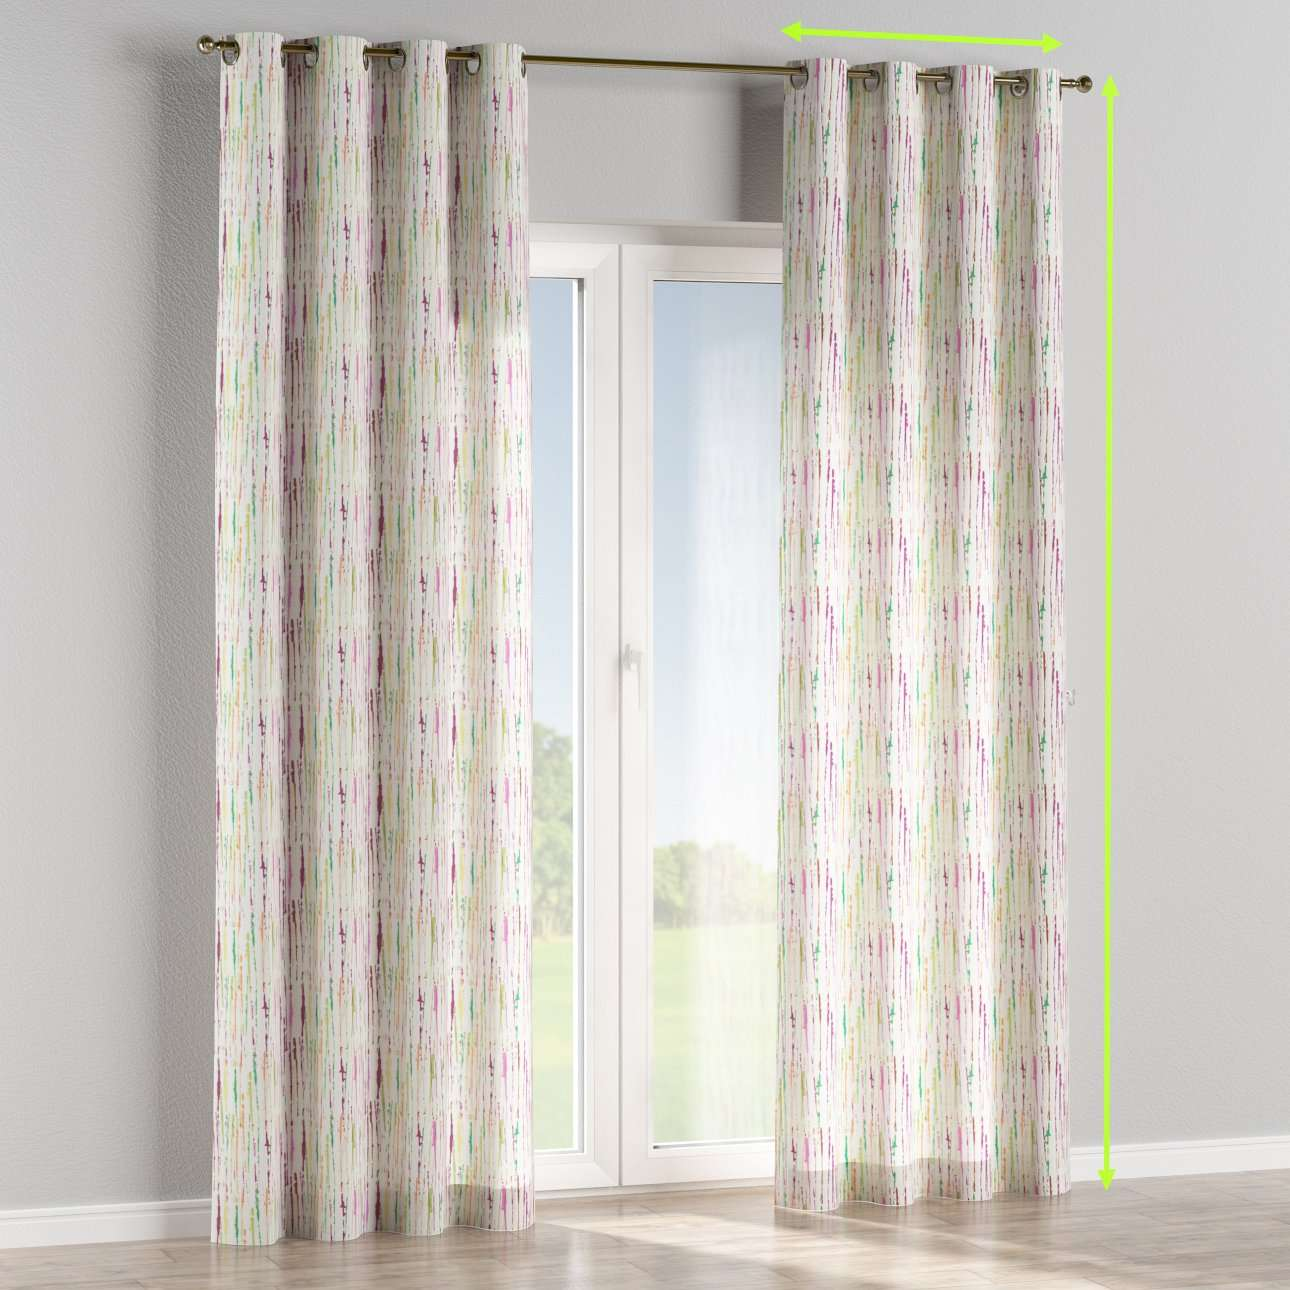 Eyelet curtains in collection Aquarelle, fabric: 140-72